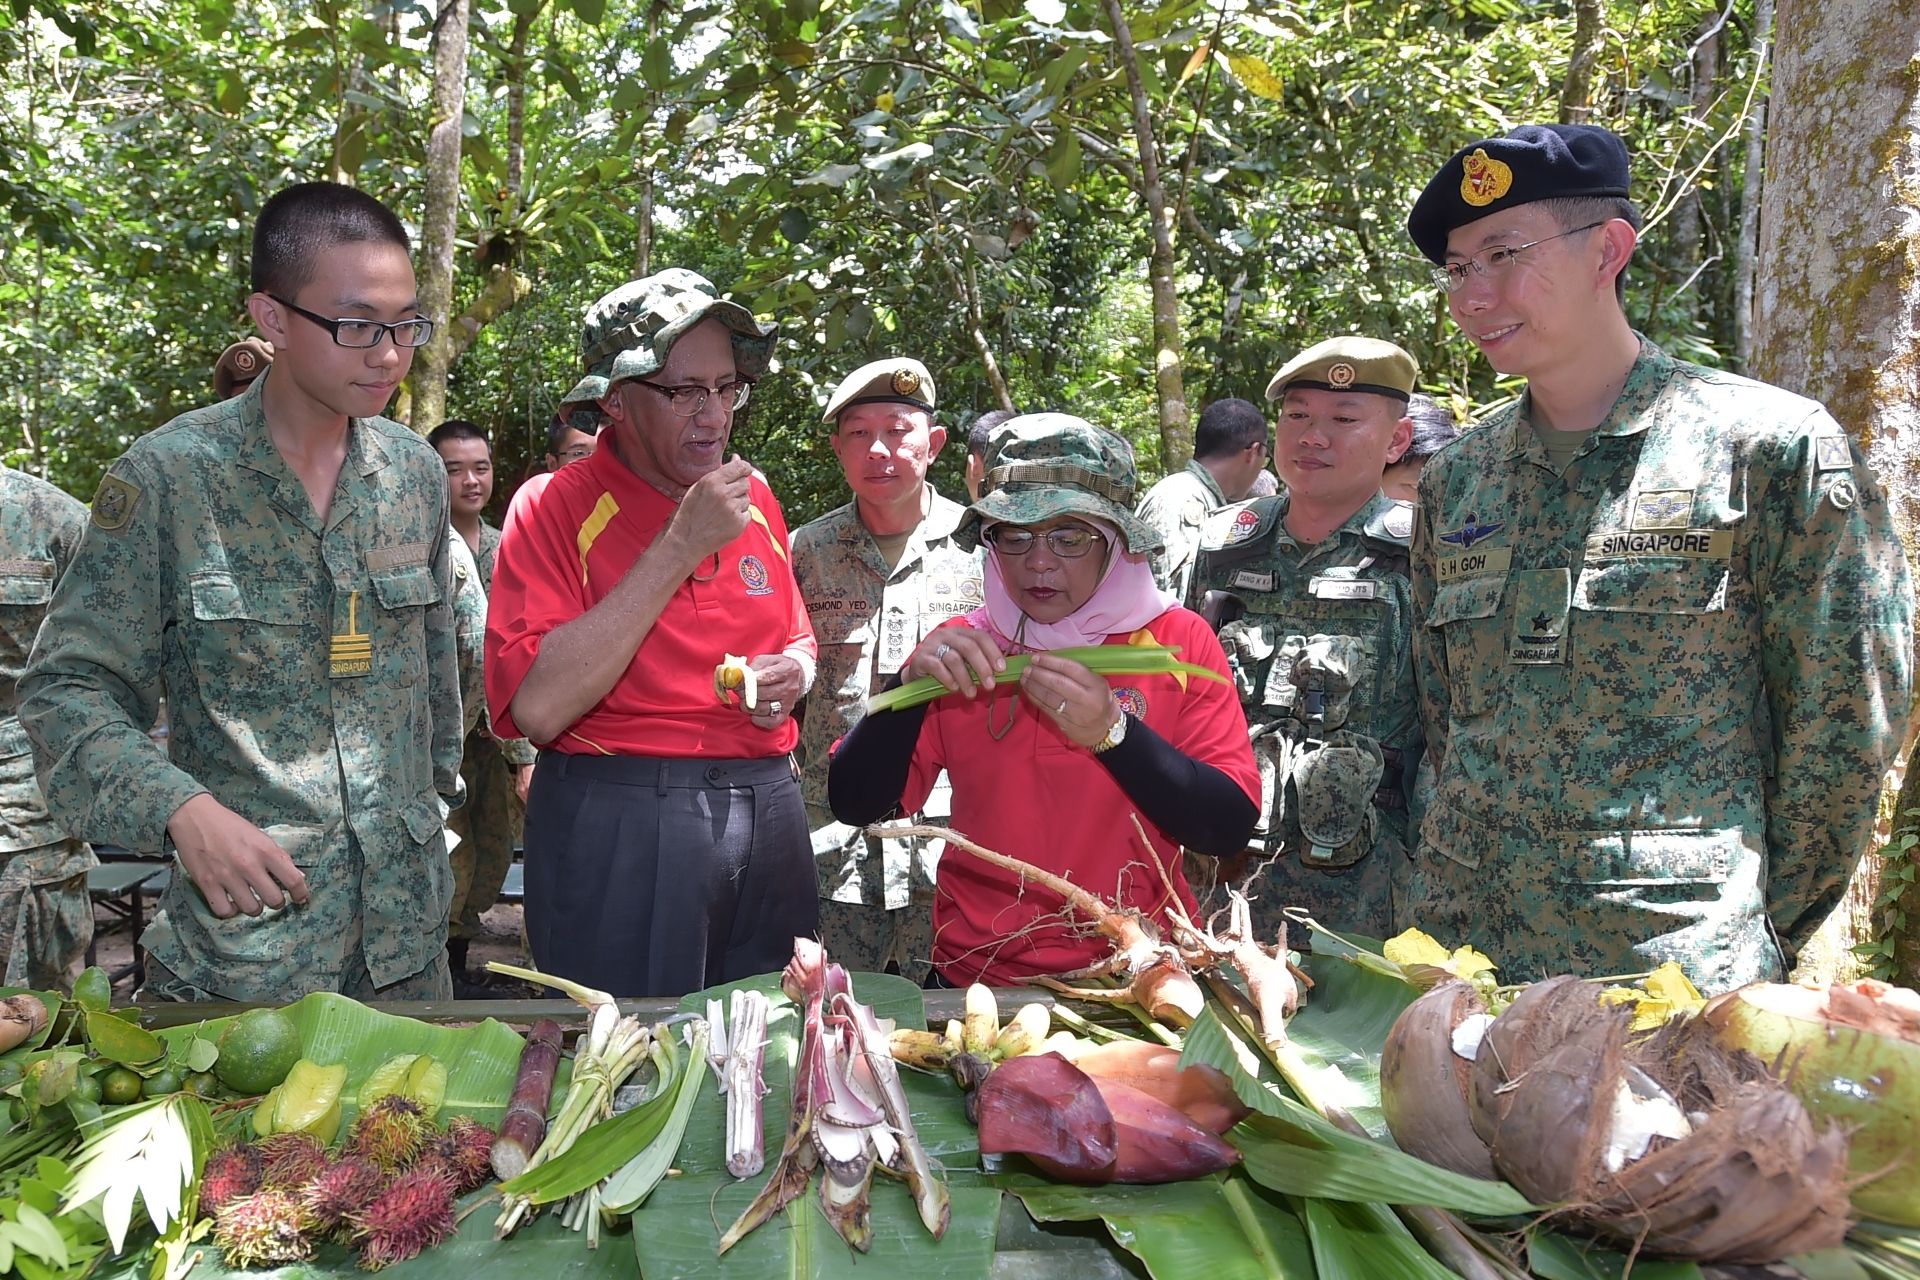 President Halimah (third from right) examining the various types of edible plants in Temburong, as part of the SAF's jungle and survival training.